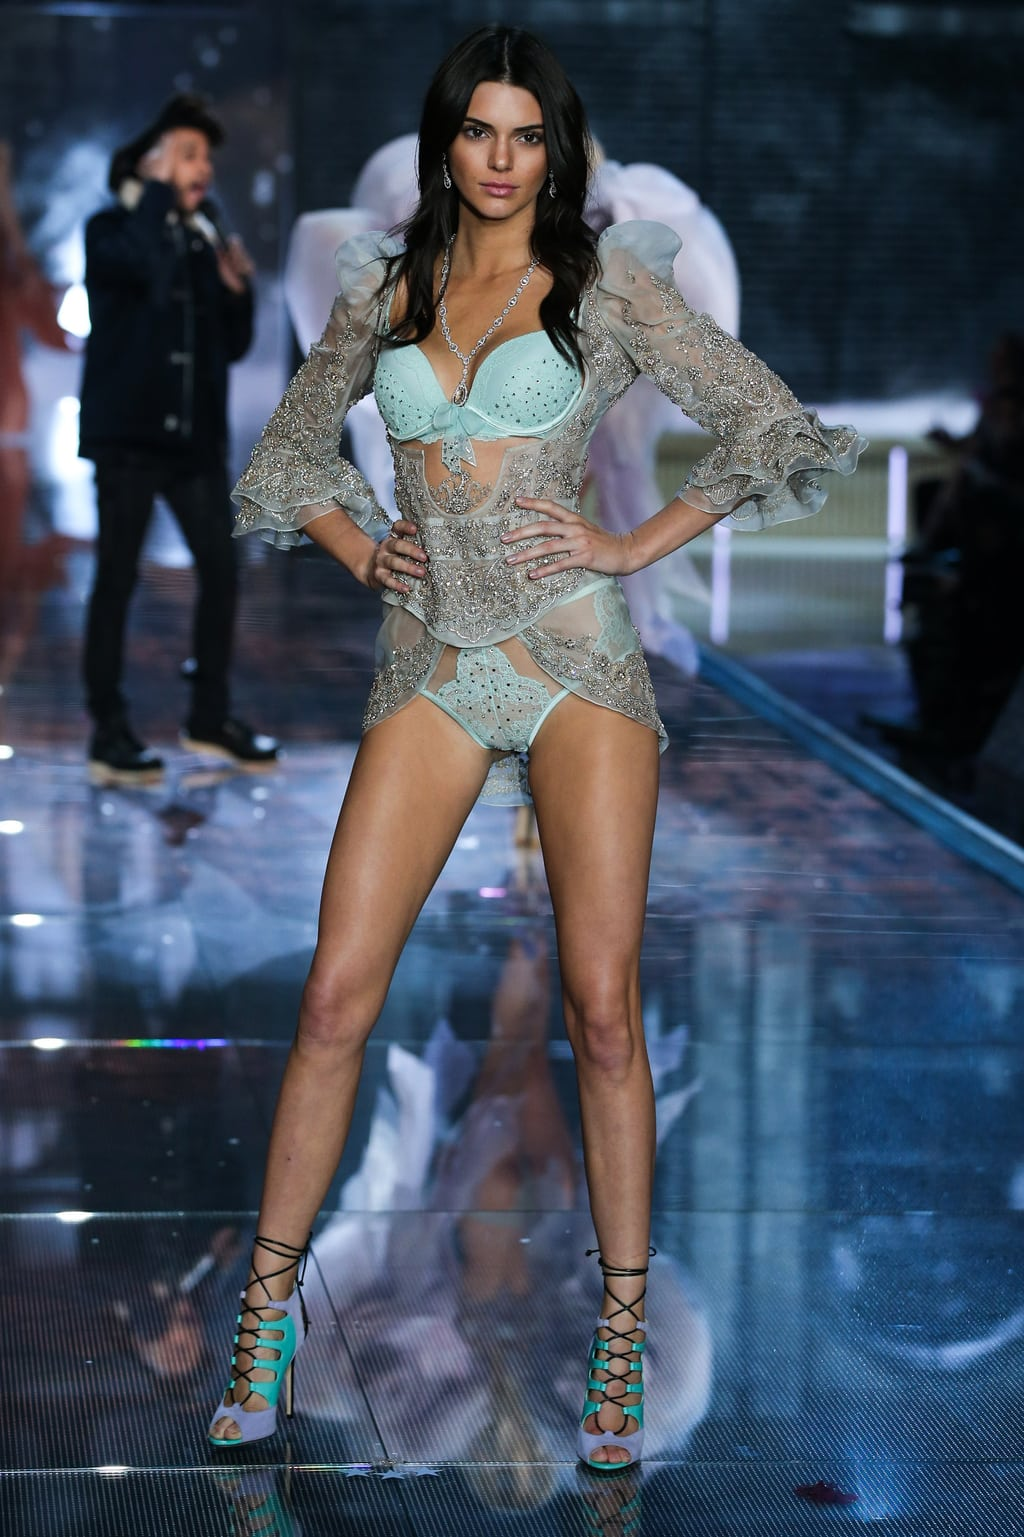 Kendall Jenner at the 2015 Victoria's Secret Fashion Show in ice blue